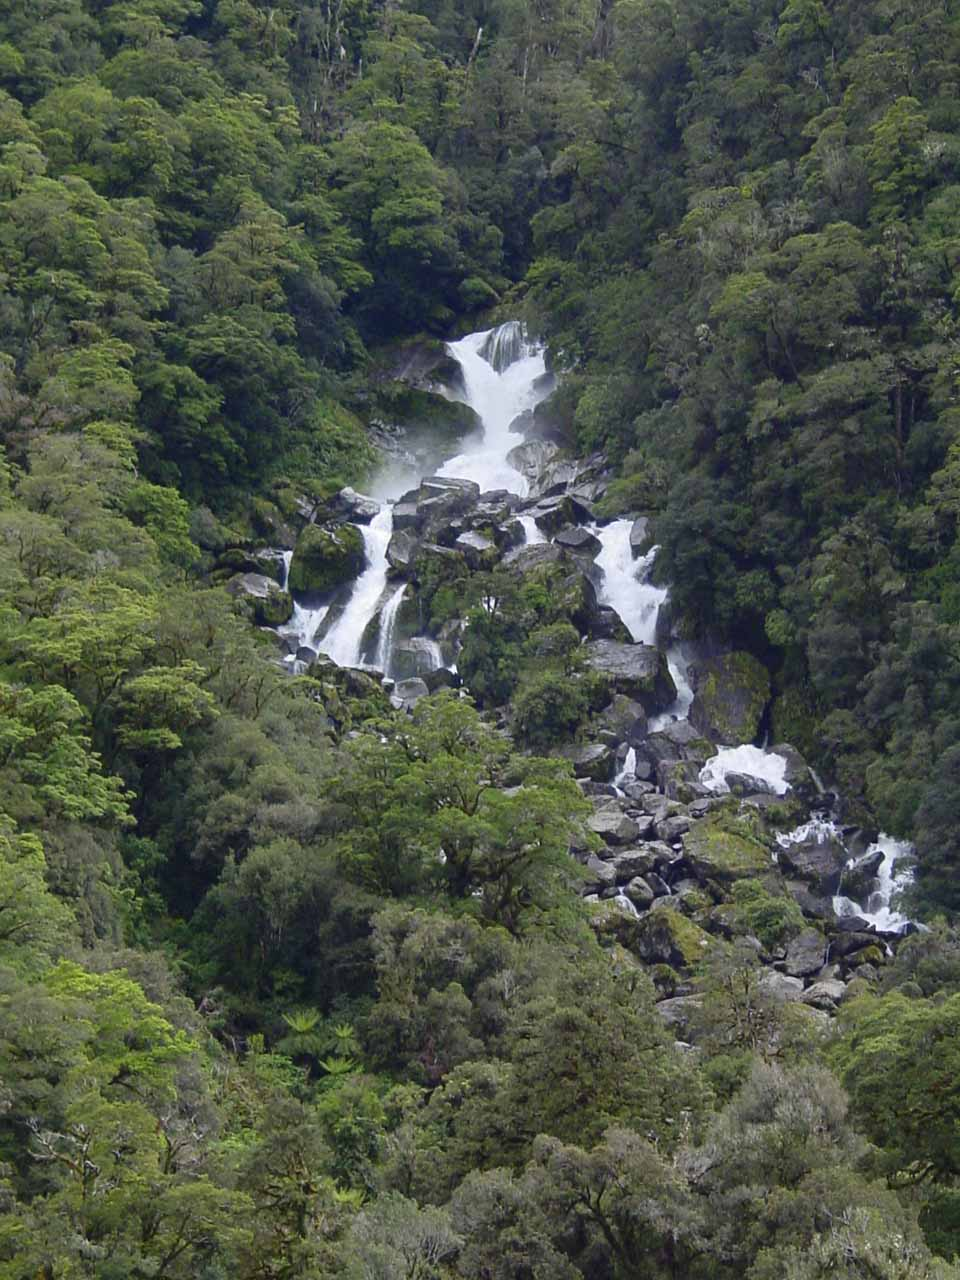 Closer more zoomed in view of Roaring Billy Falls